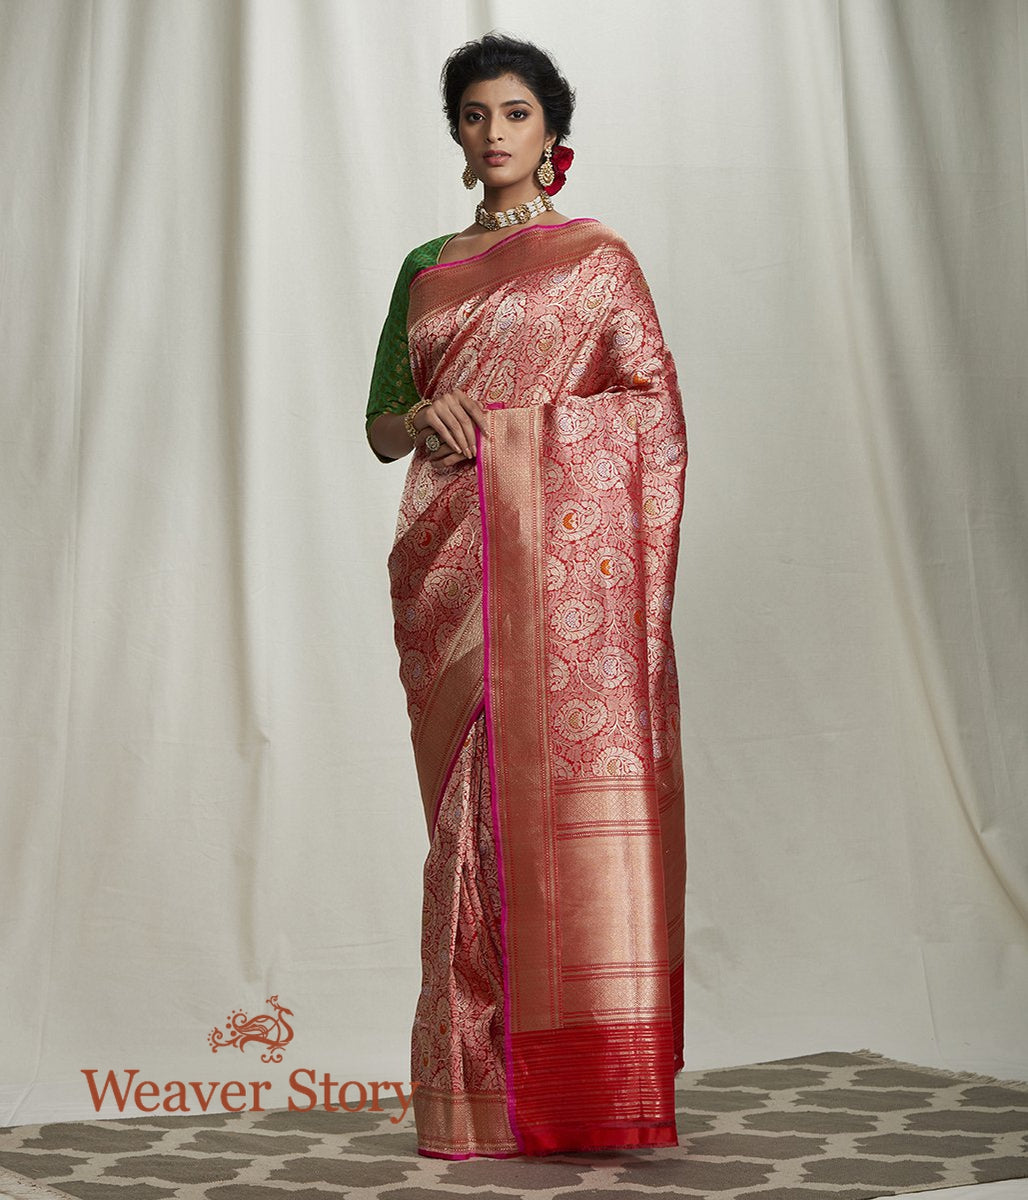 Handwoven Red Kimkhab Banarasi Saree with Paisleys